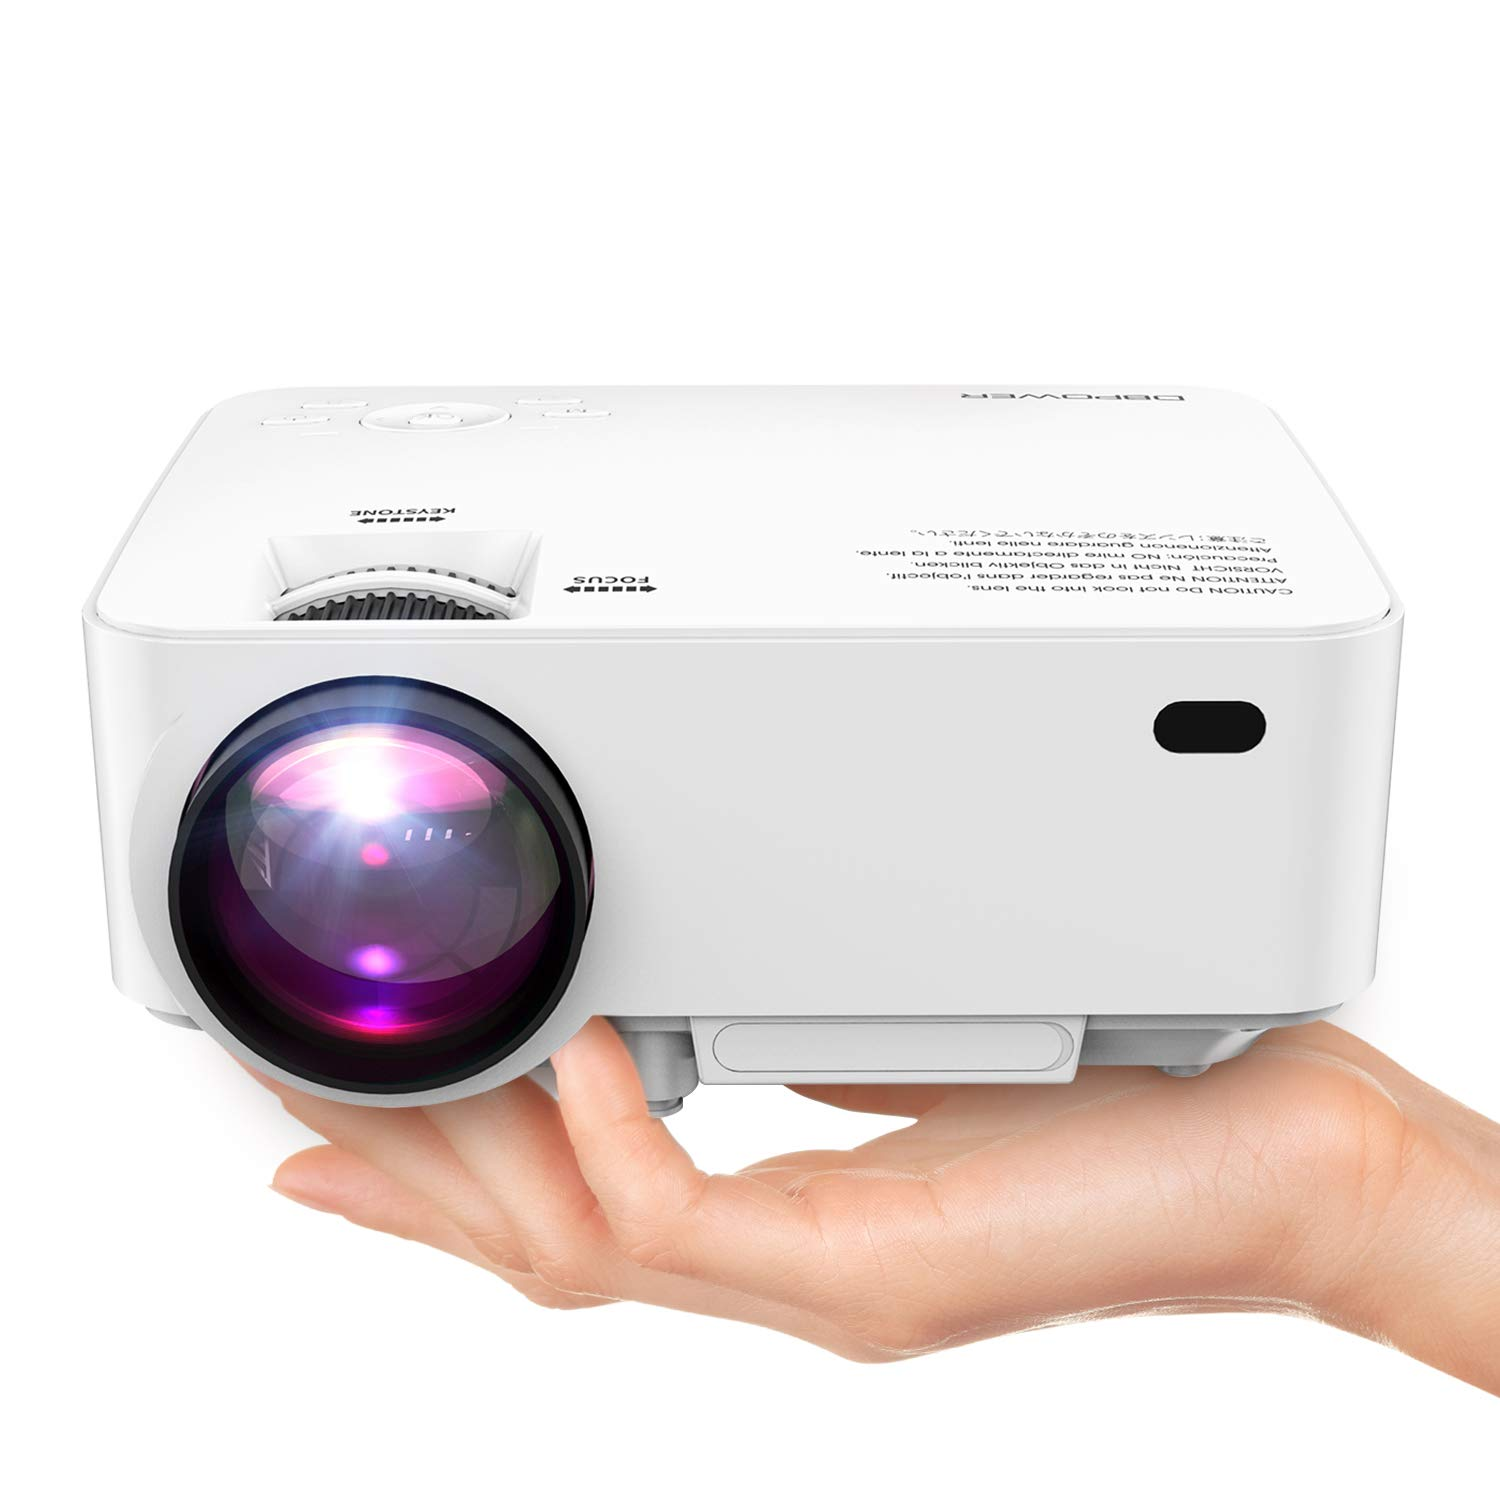 DBPOWER Mini Projector (PREAD Lamp Solution), 50% Brighter Full HD LED Movie Projector with 176'' Display, 2018 Custimized for Home Theater, Compatible with Smartphone,1080p/HDMI/Supported by DBPOWER